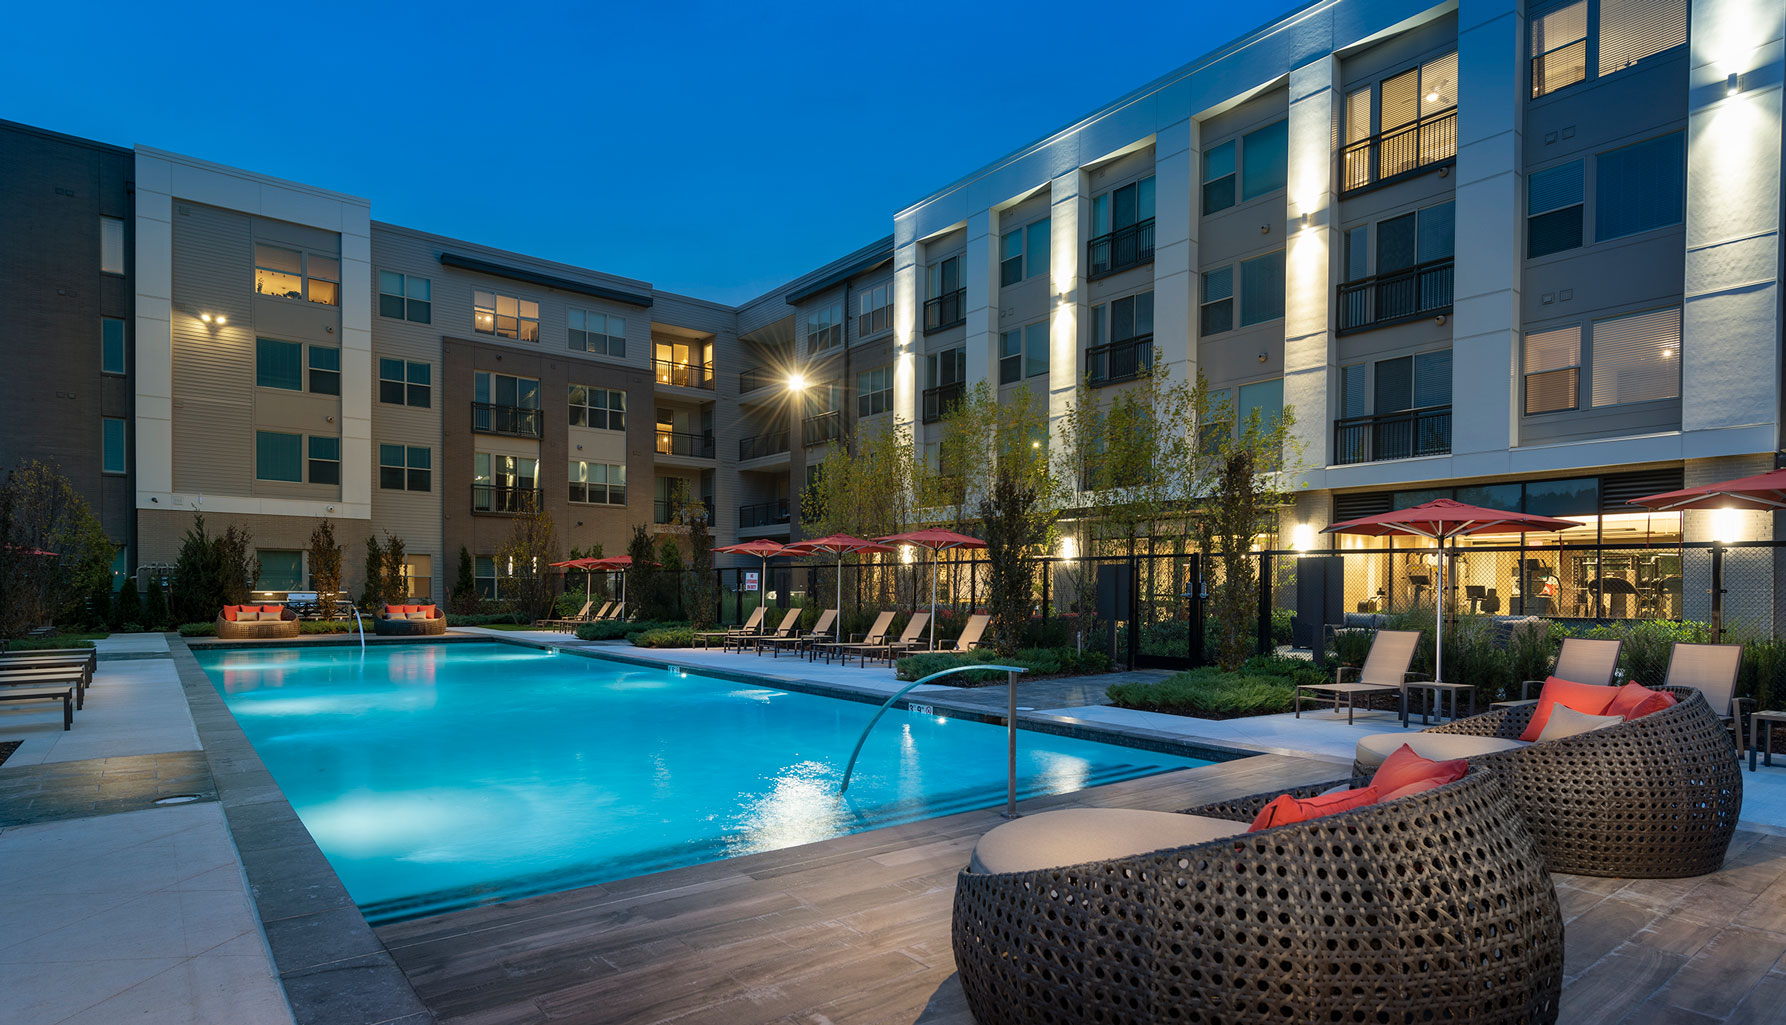 Evening shot of lighted pool with lounge seating and umbrellas